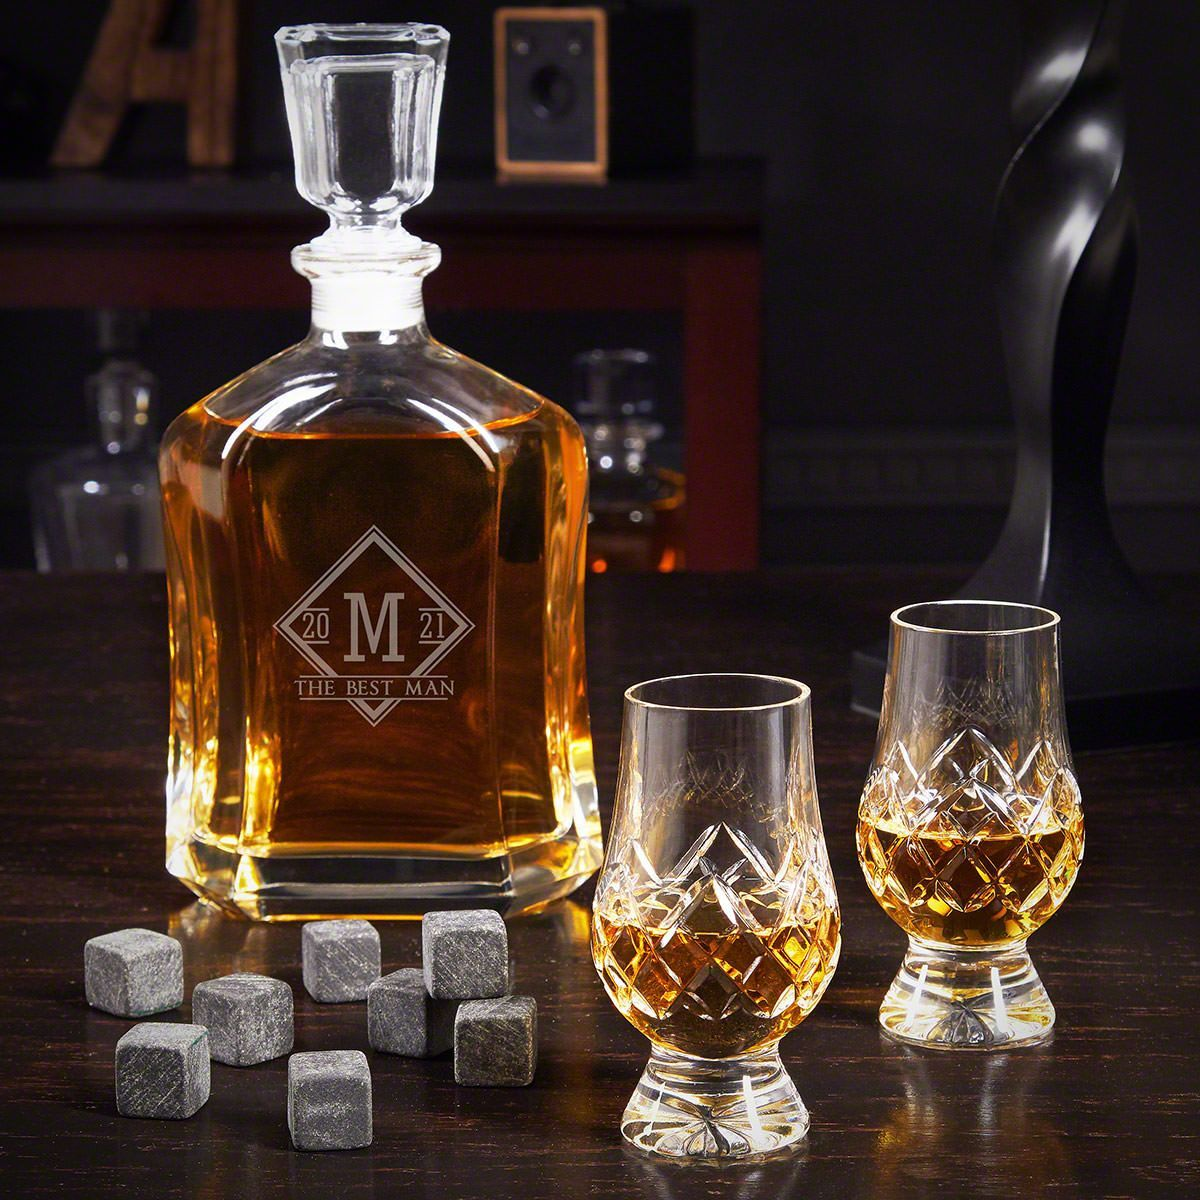 Drake Argos Personalized Decanter Set With Crystal Glencairn Glasses Engraved Beer Mugs Crystal Decanter Set Whiskey Decanter Set